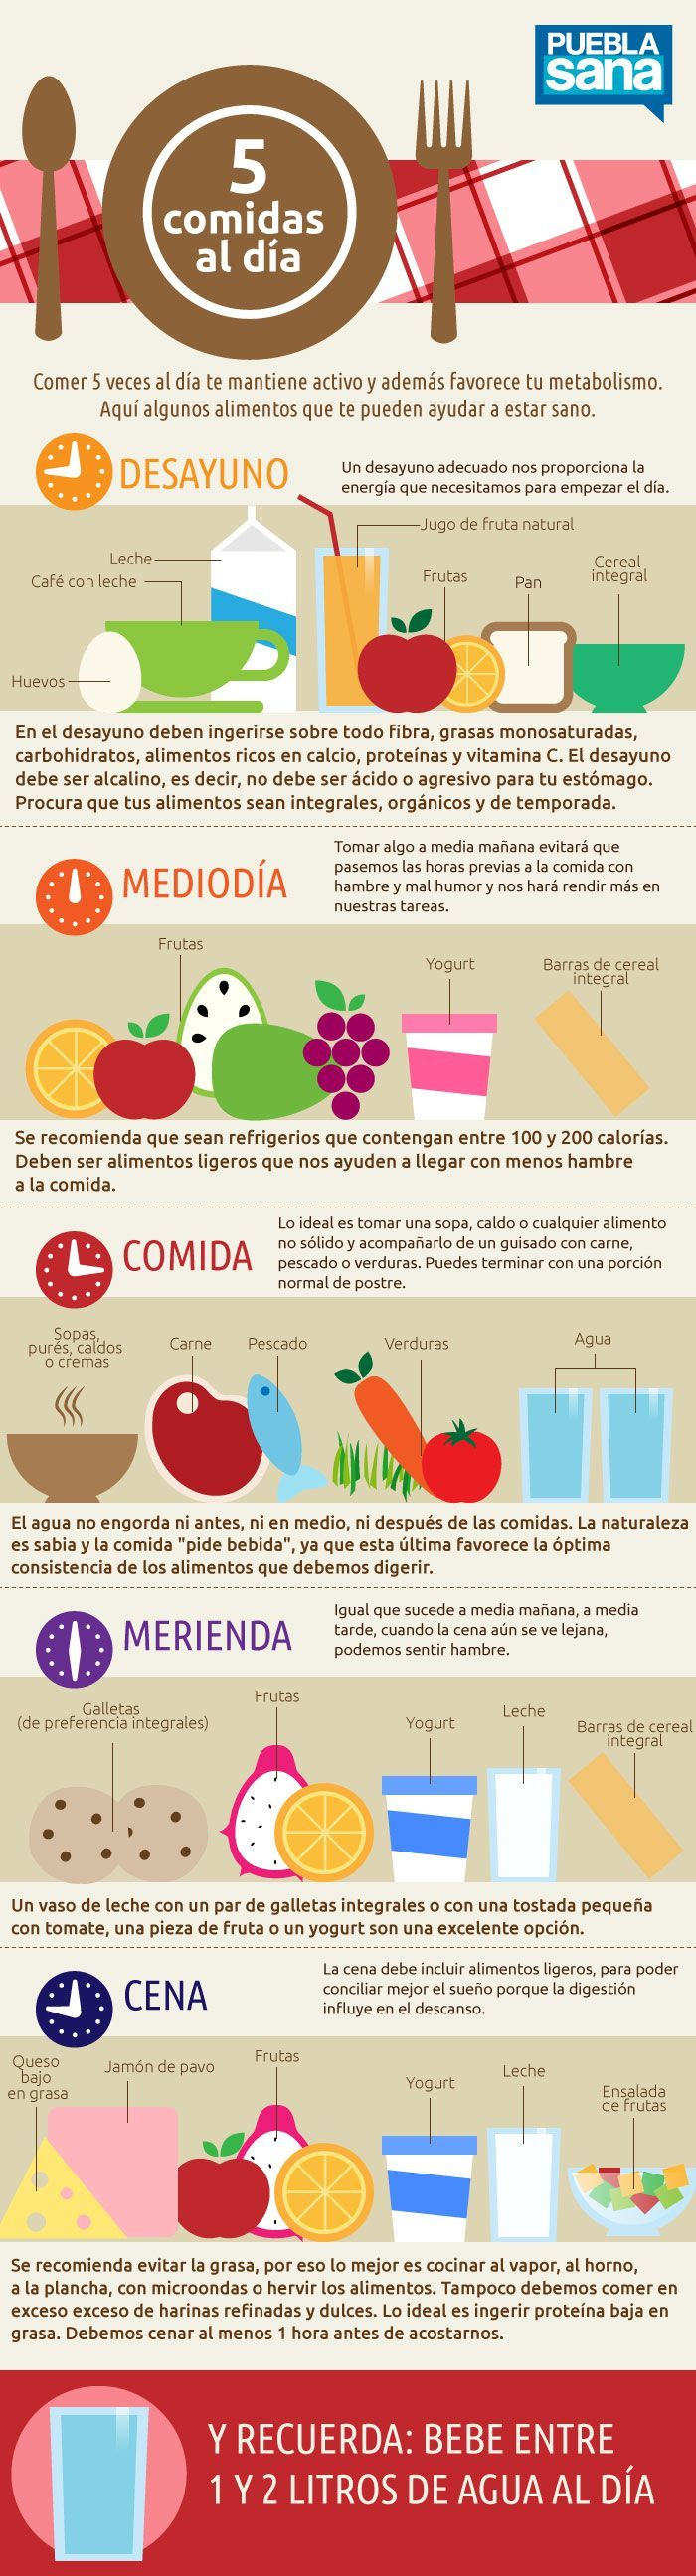 5 Comidas Al Día - Infografía This is just perfect! I love that there are clocks to show what time they eat the meals and snacks. De la Secretaria de #salud del gobierno de Puebla, Méx. #Realidades3B